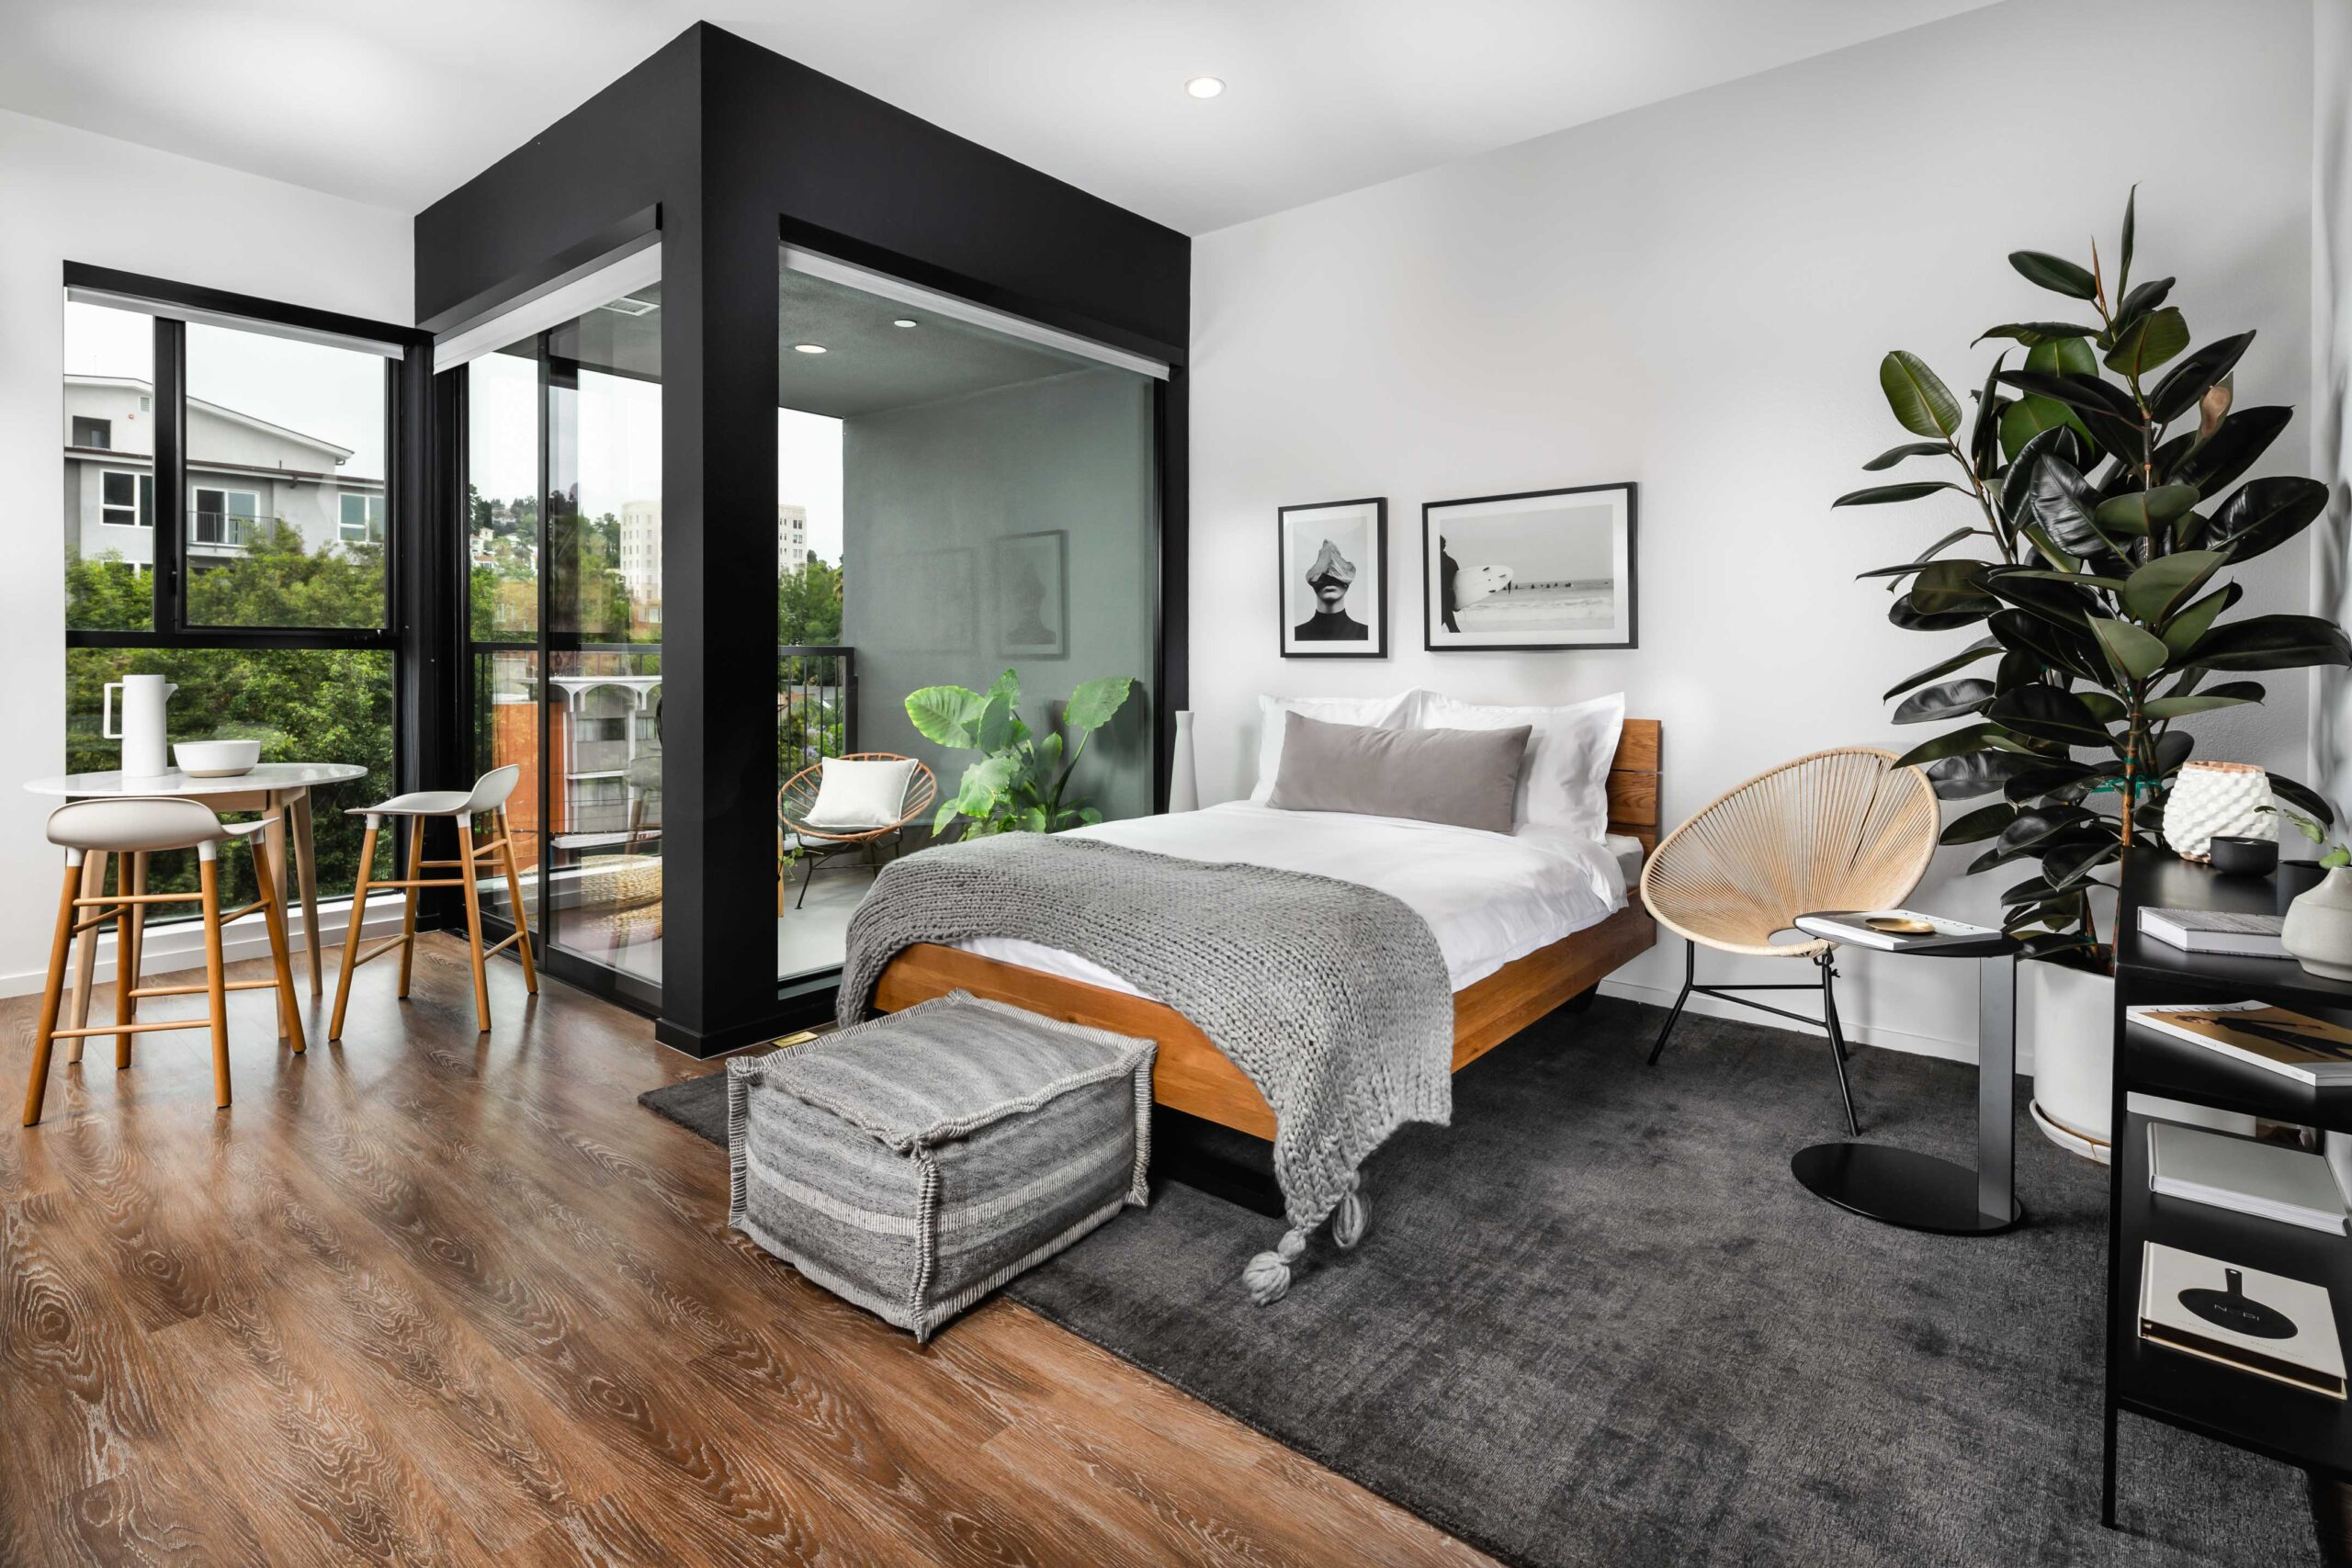 design your home like a chic hotel